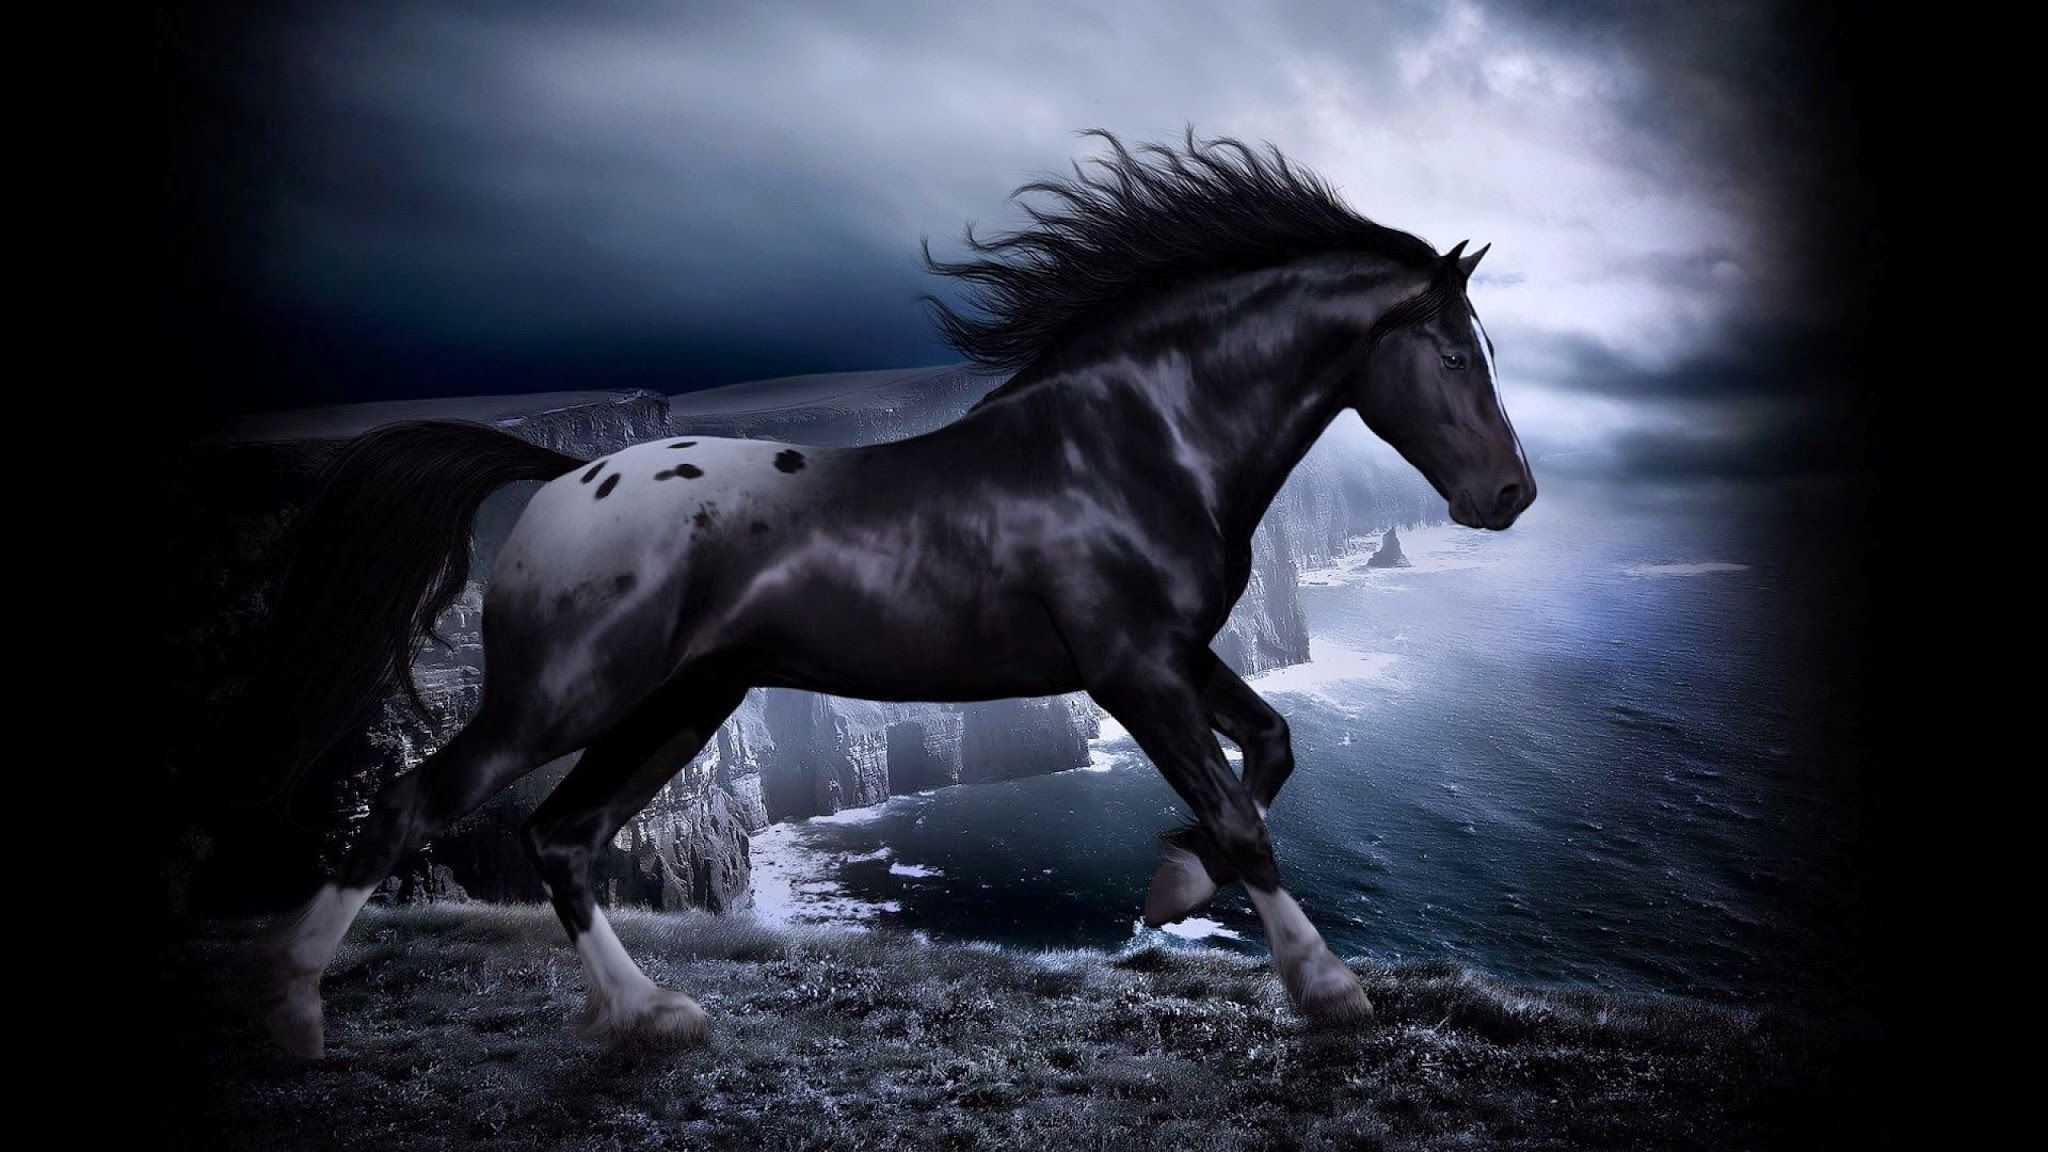 Black Horse 3d Desktop Wallpaper Black Horses Wallpaper Hd